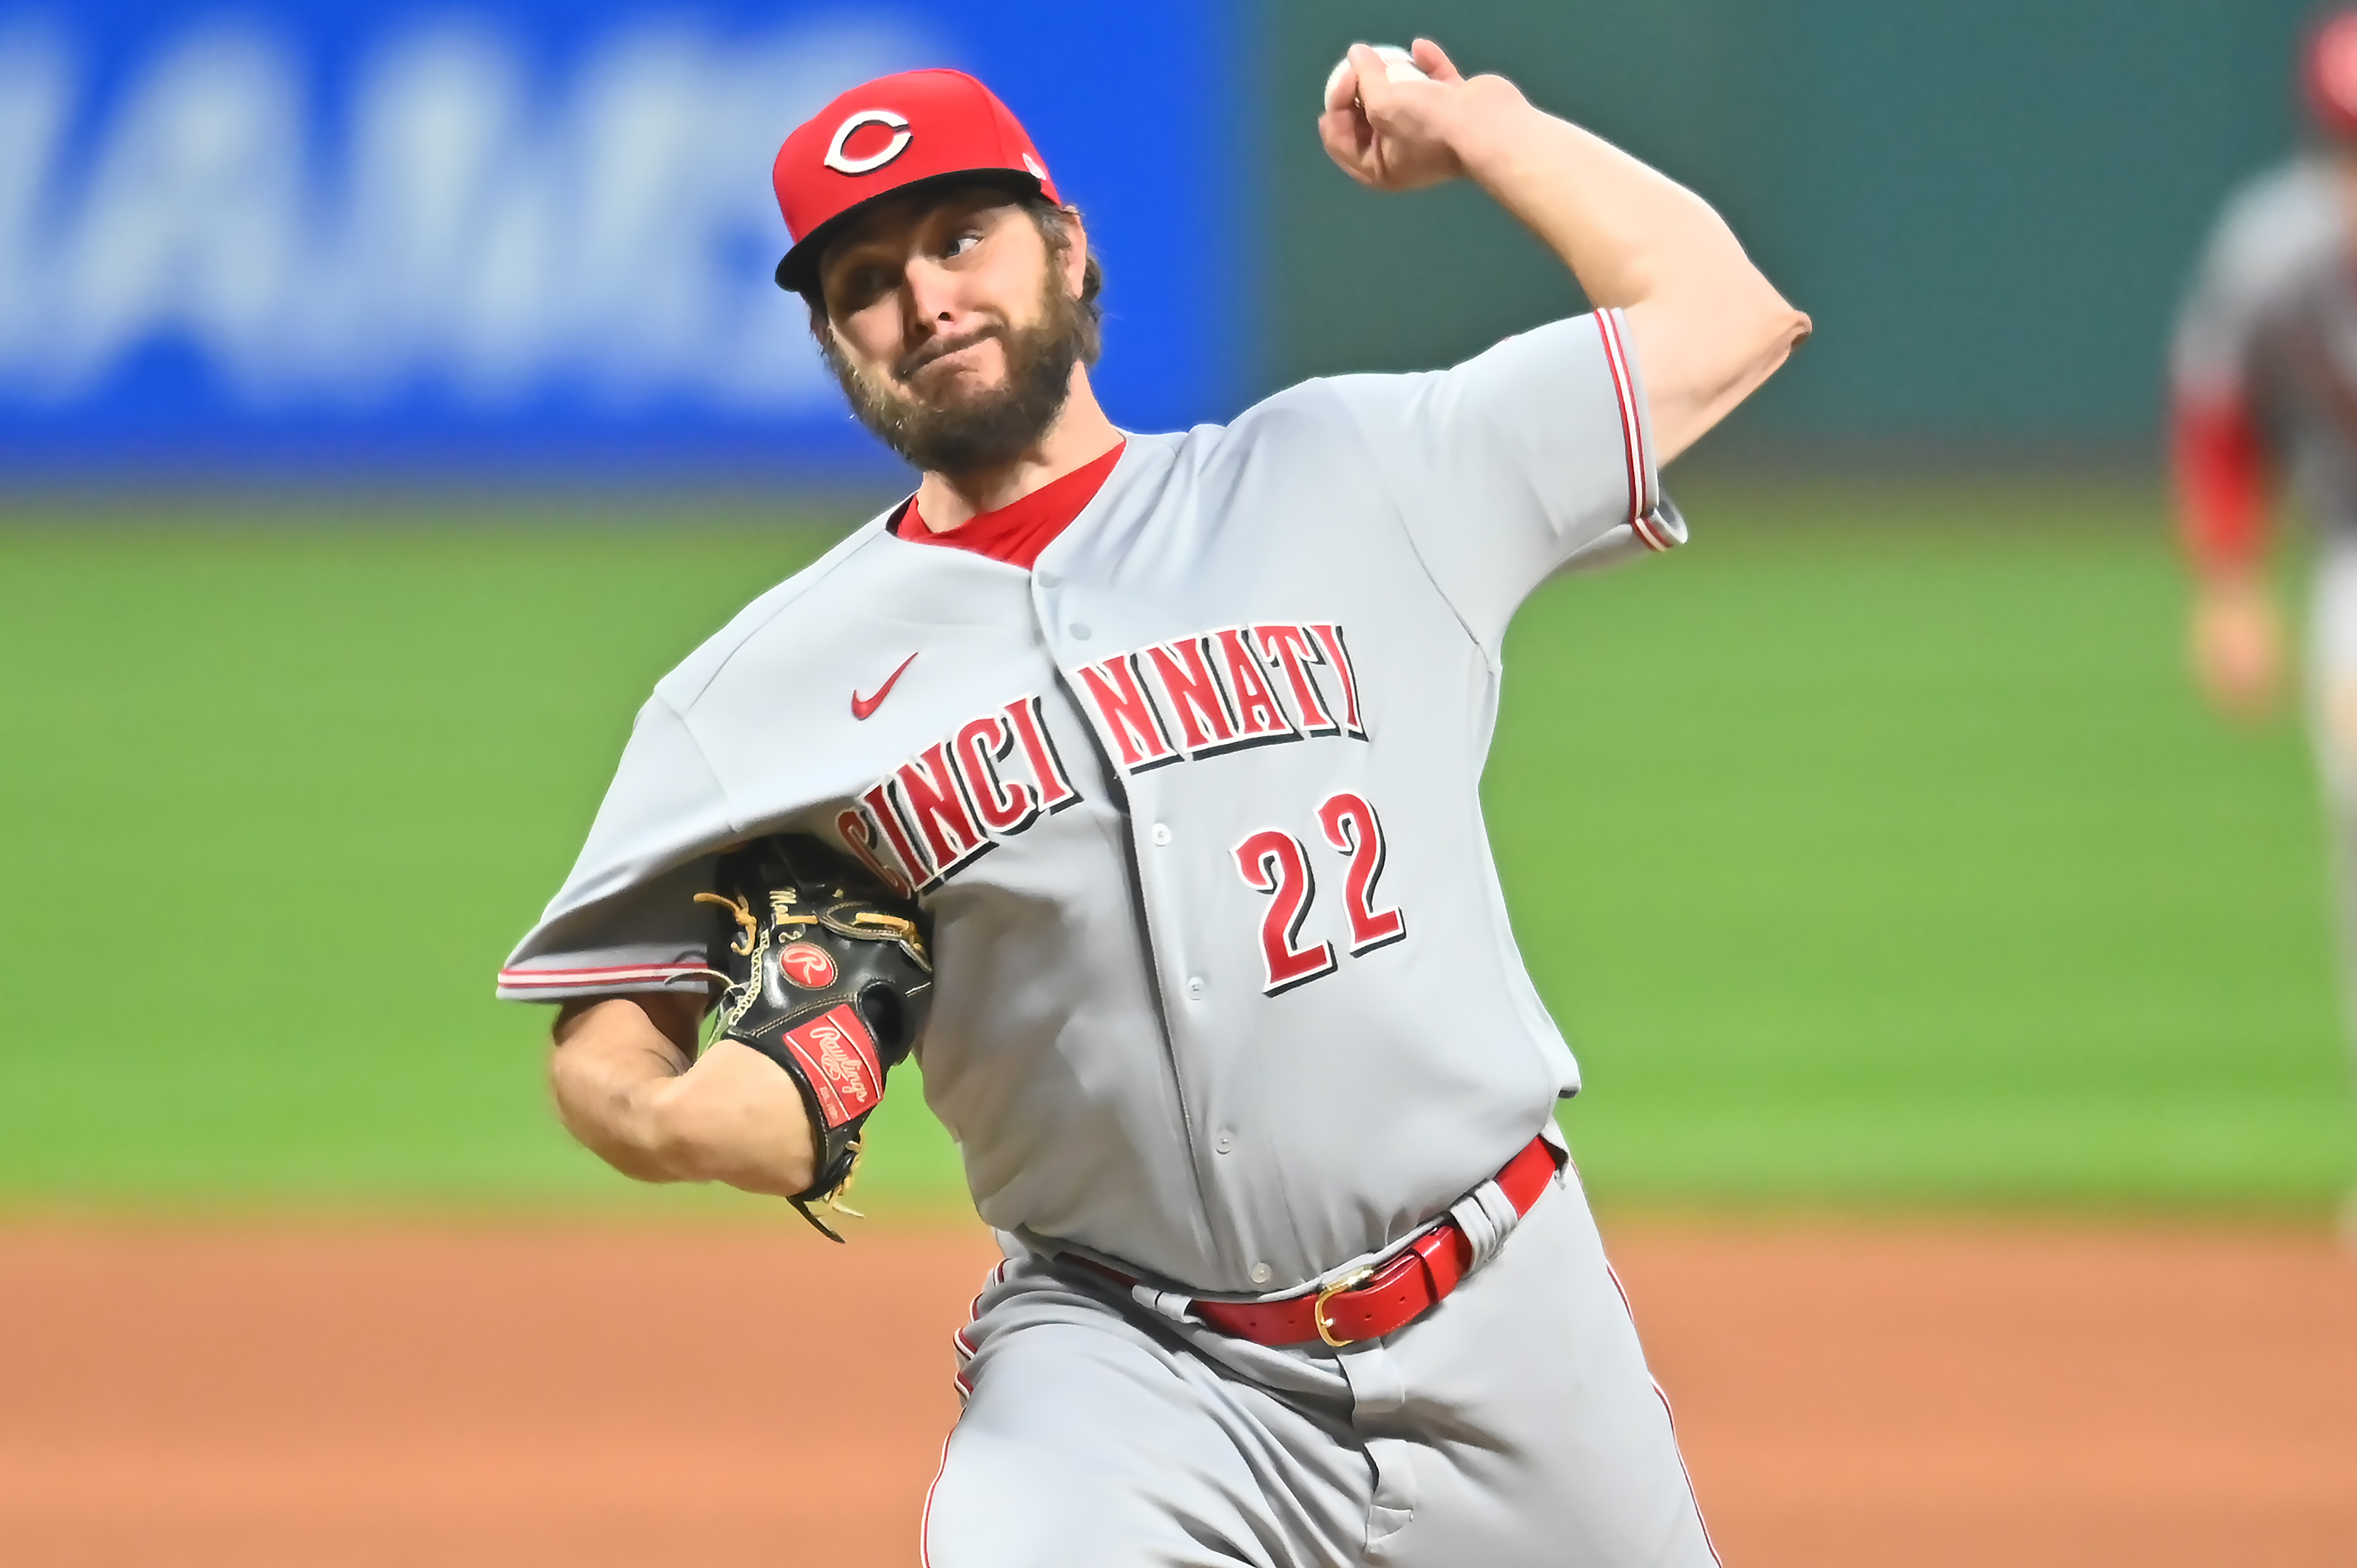 Cincinnati Reds starting pitcher Wade Miley (22) throws a pitch during the first inning against the Cleveland Indians at Progressive Field.